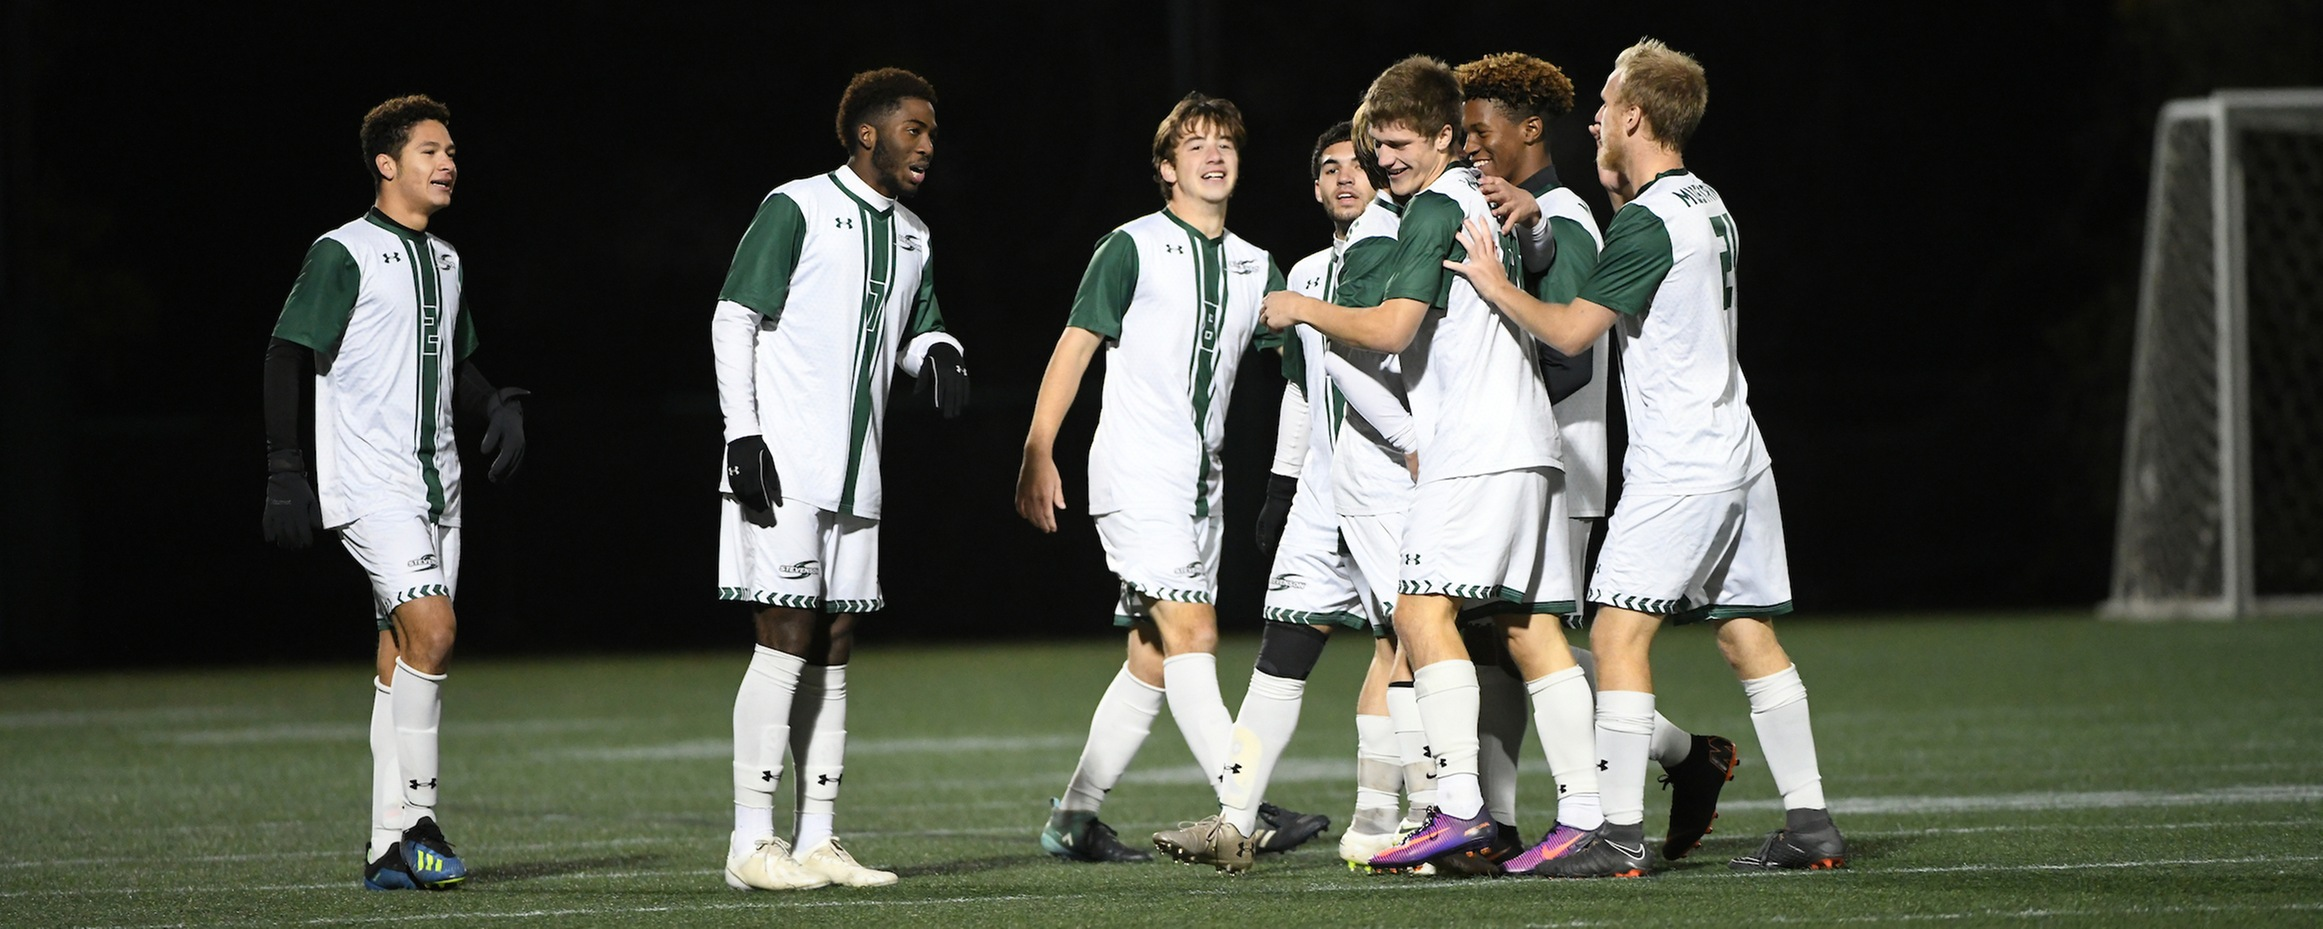 Men's Soccer to Host Franciscan in ECAC First Round